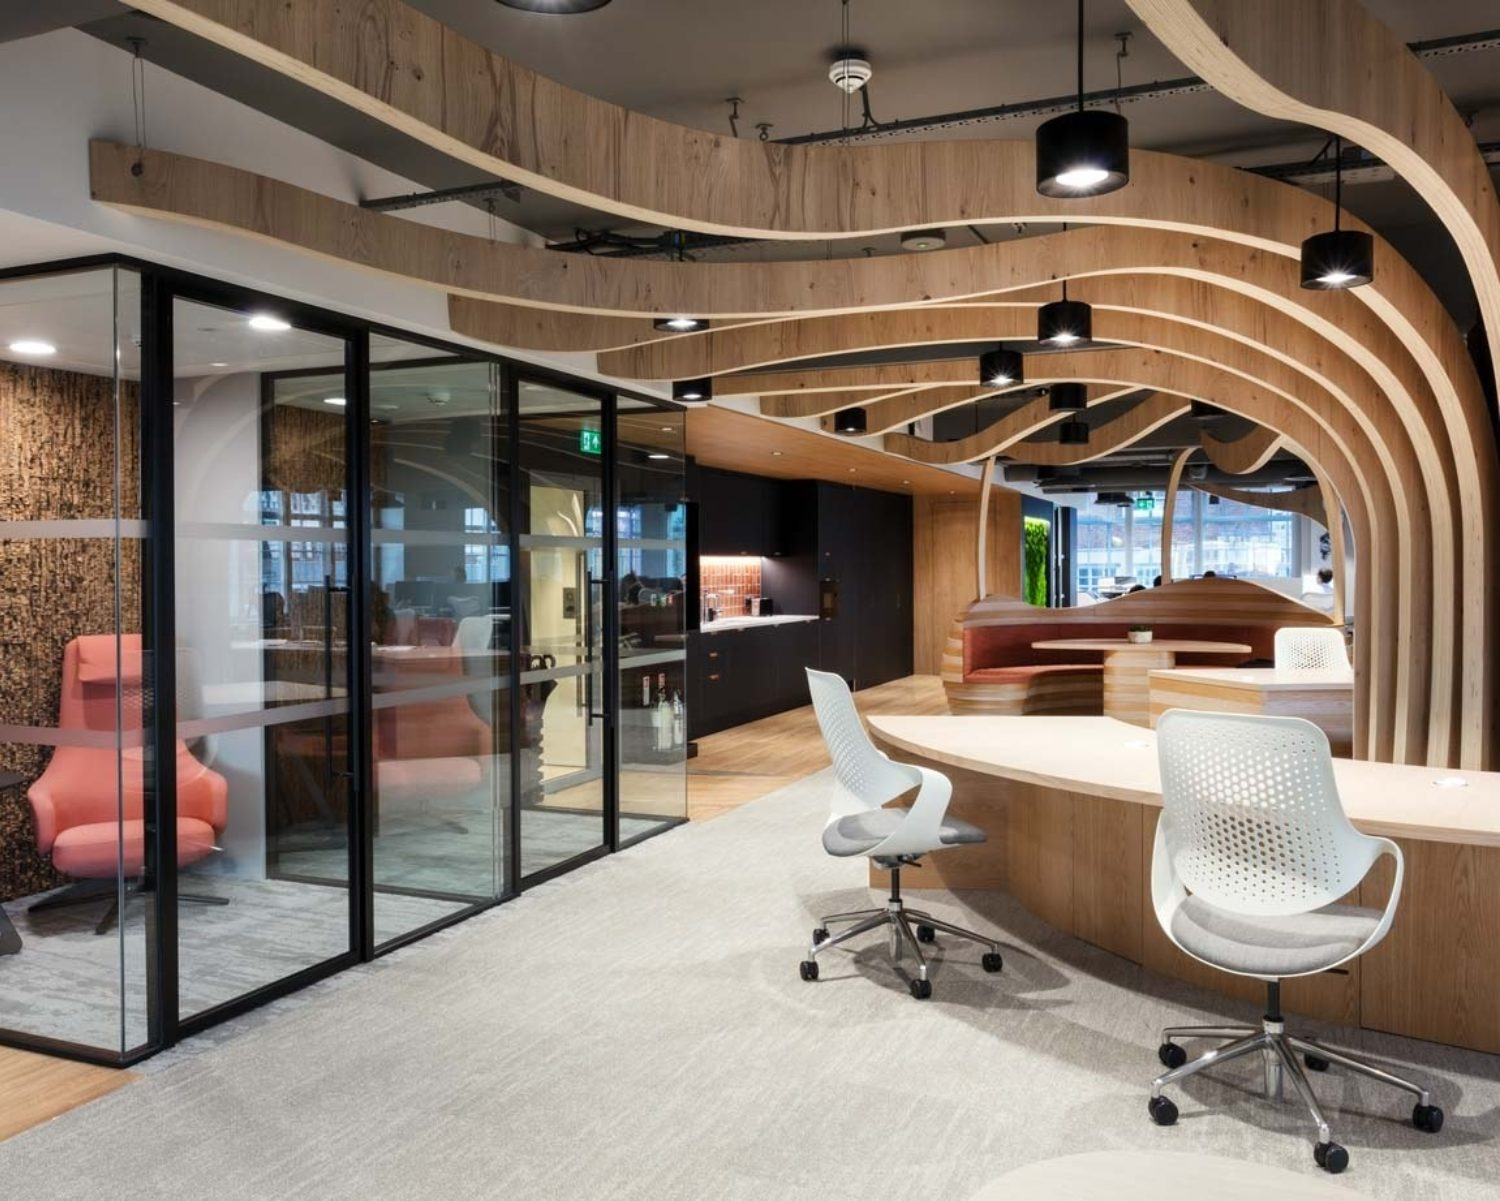 Office design for introverts